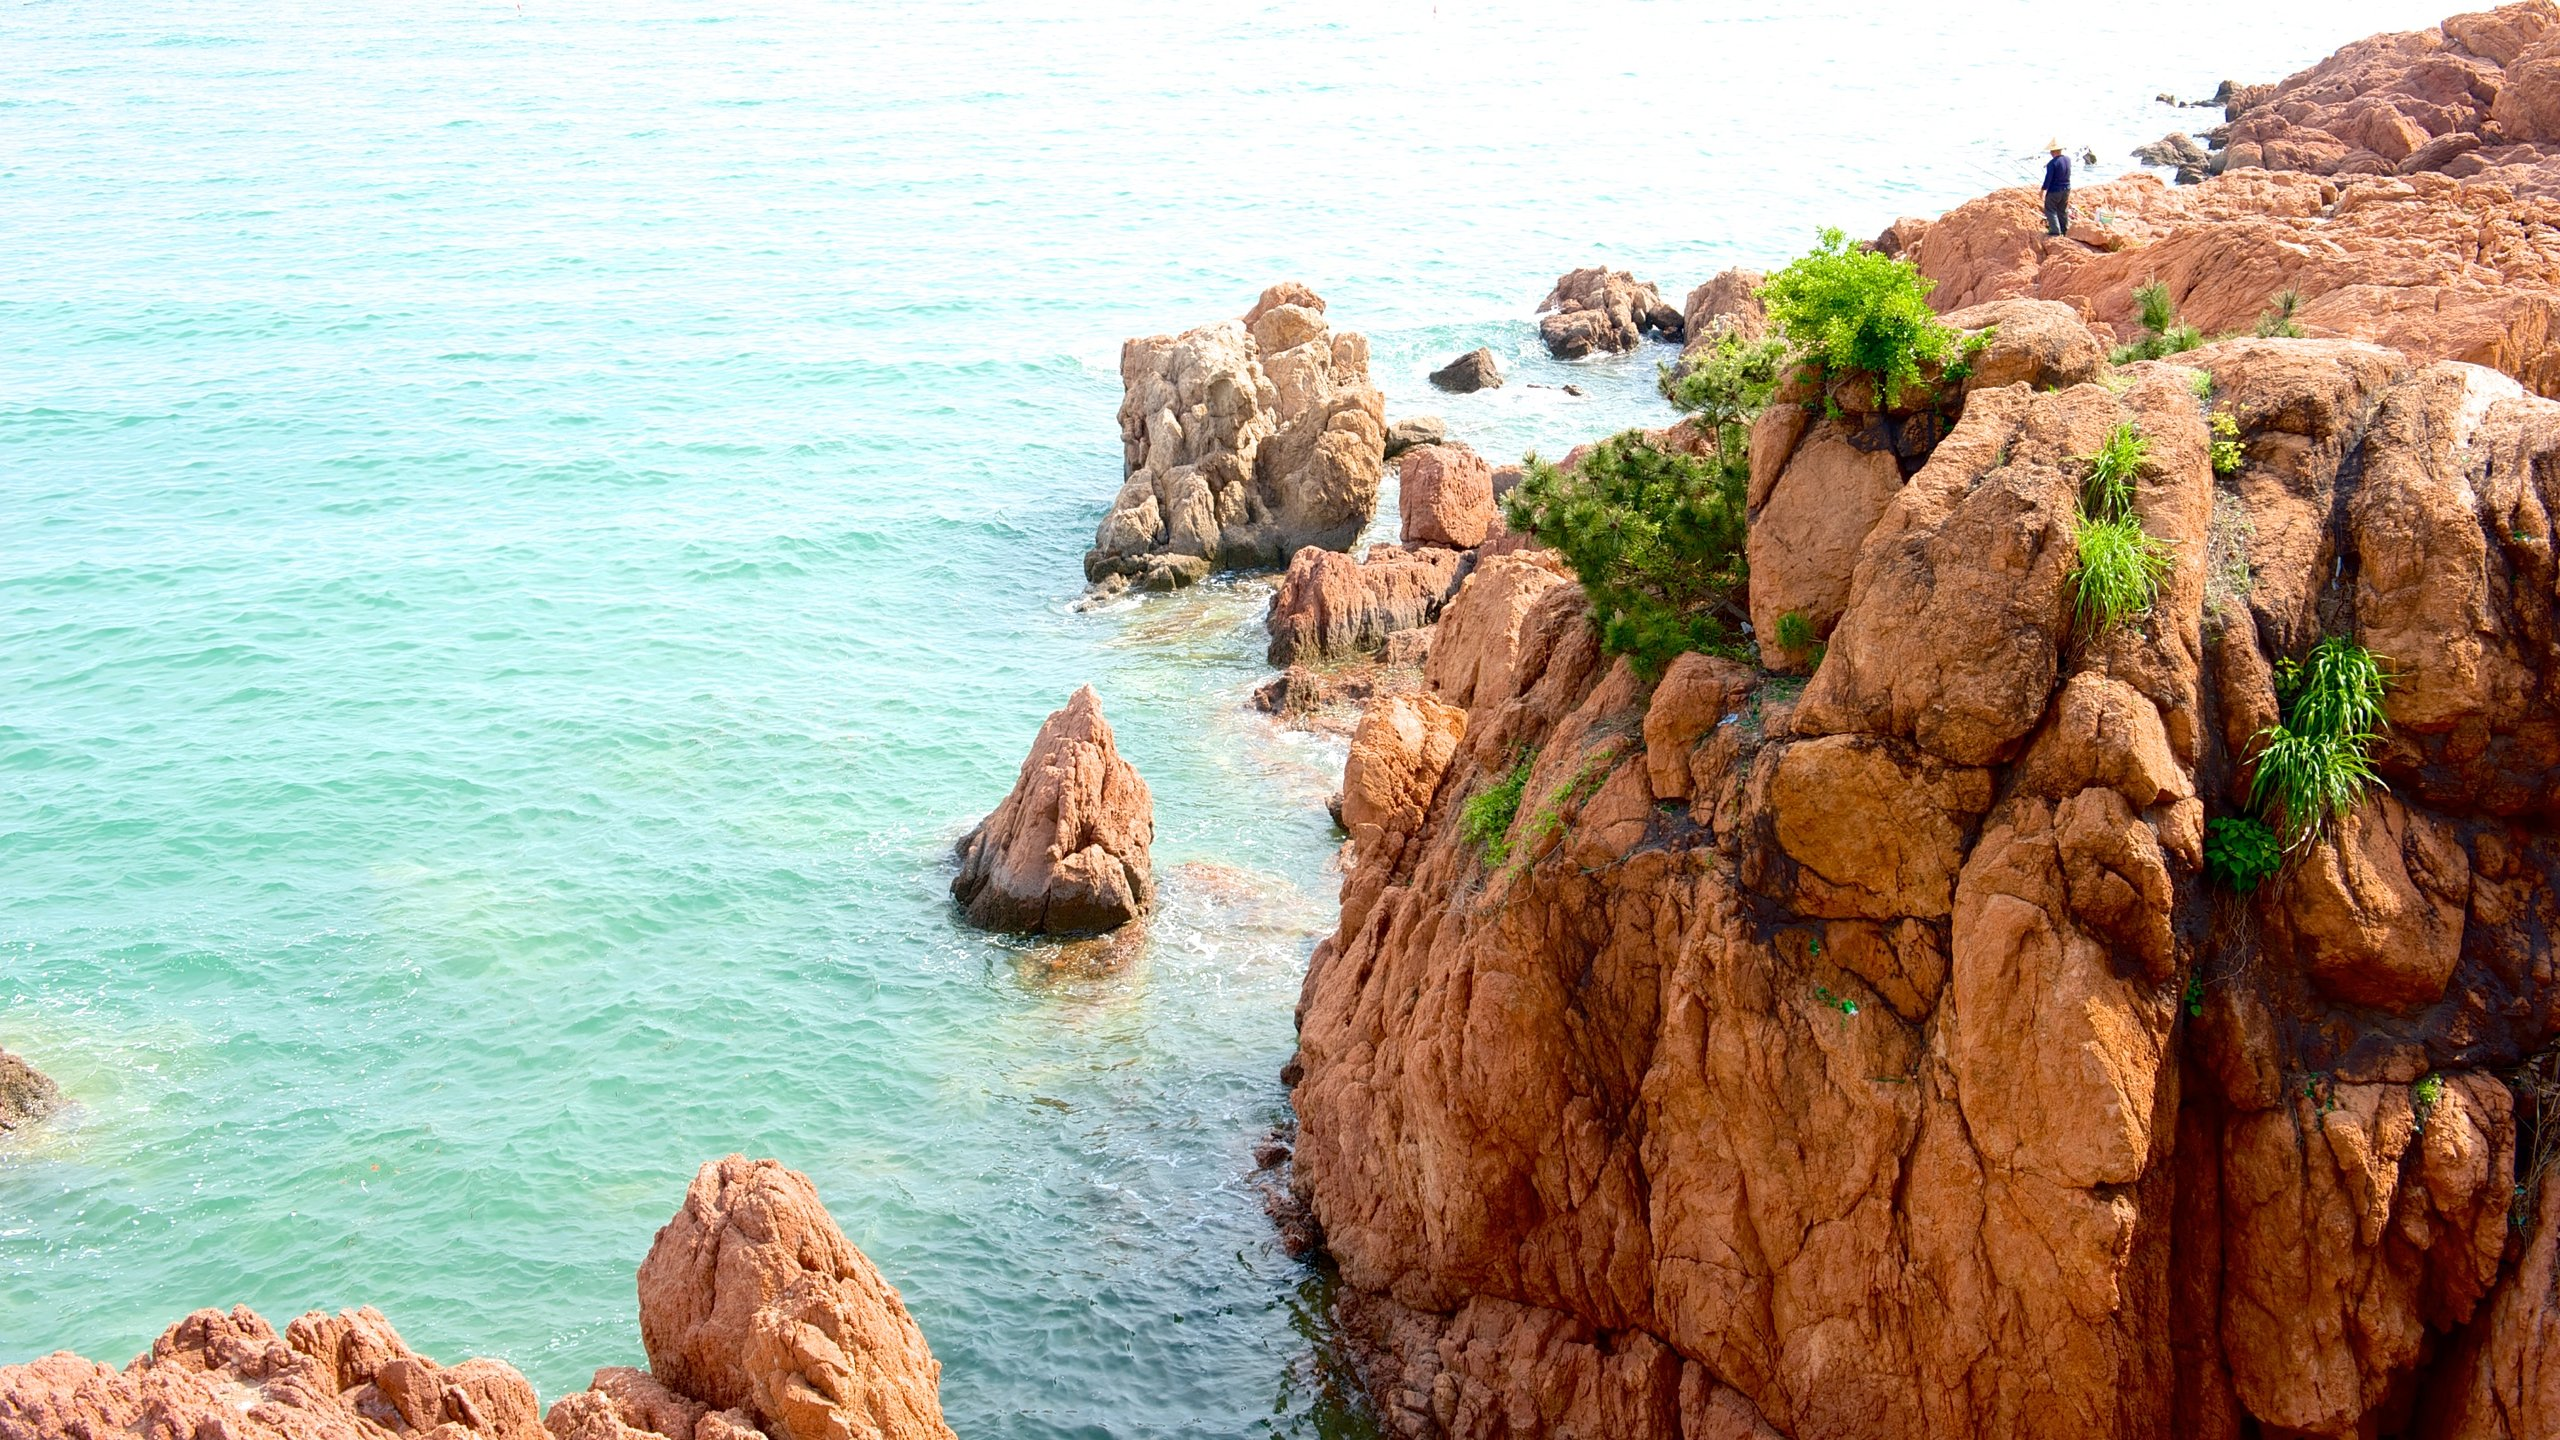 Number 1 Beach which includes rocky coastline